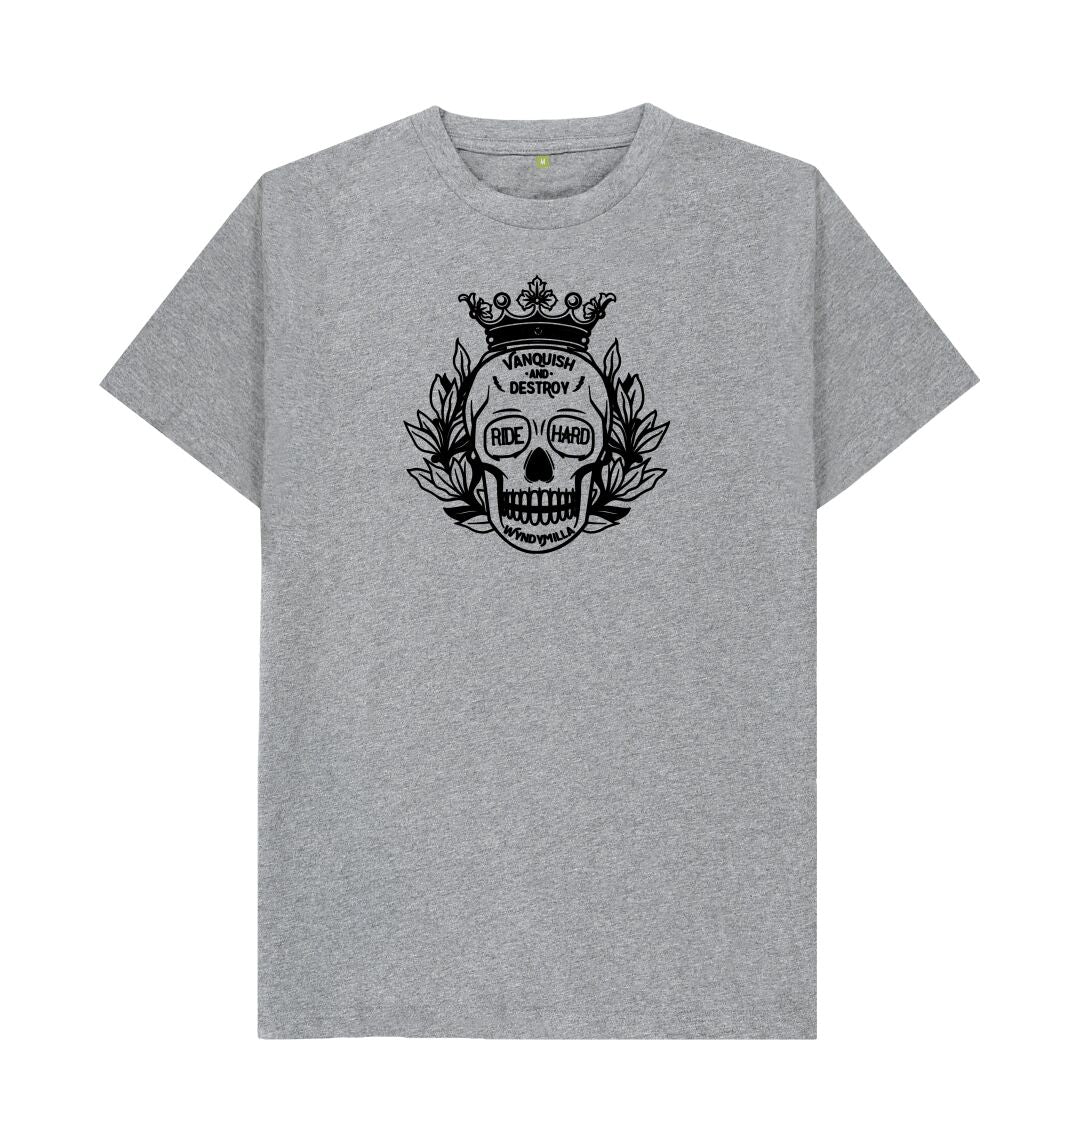 Athletic Grey 'Vanquish And Destroy' T-shirt